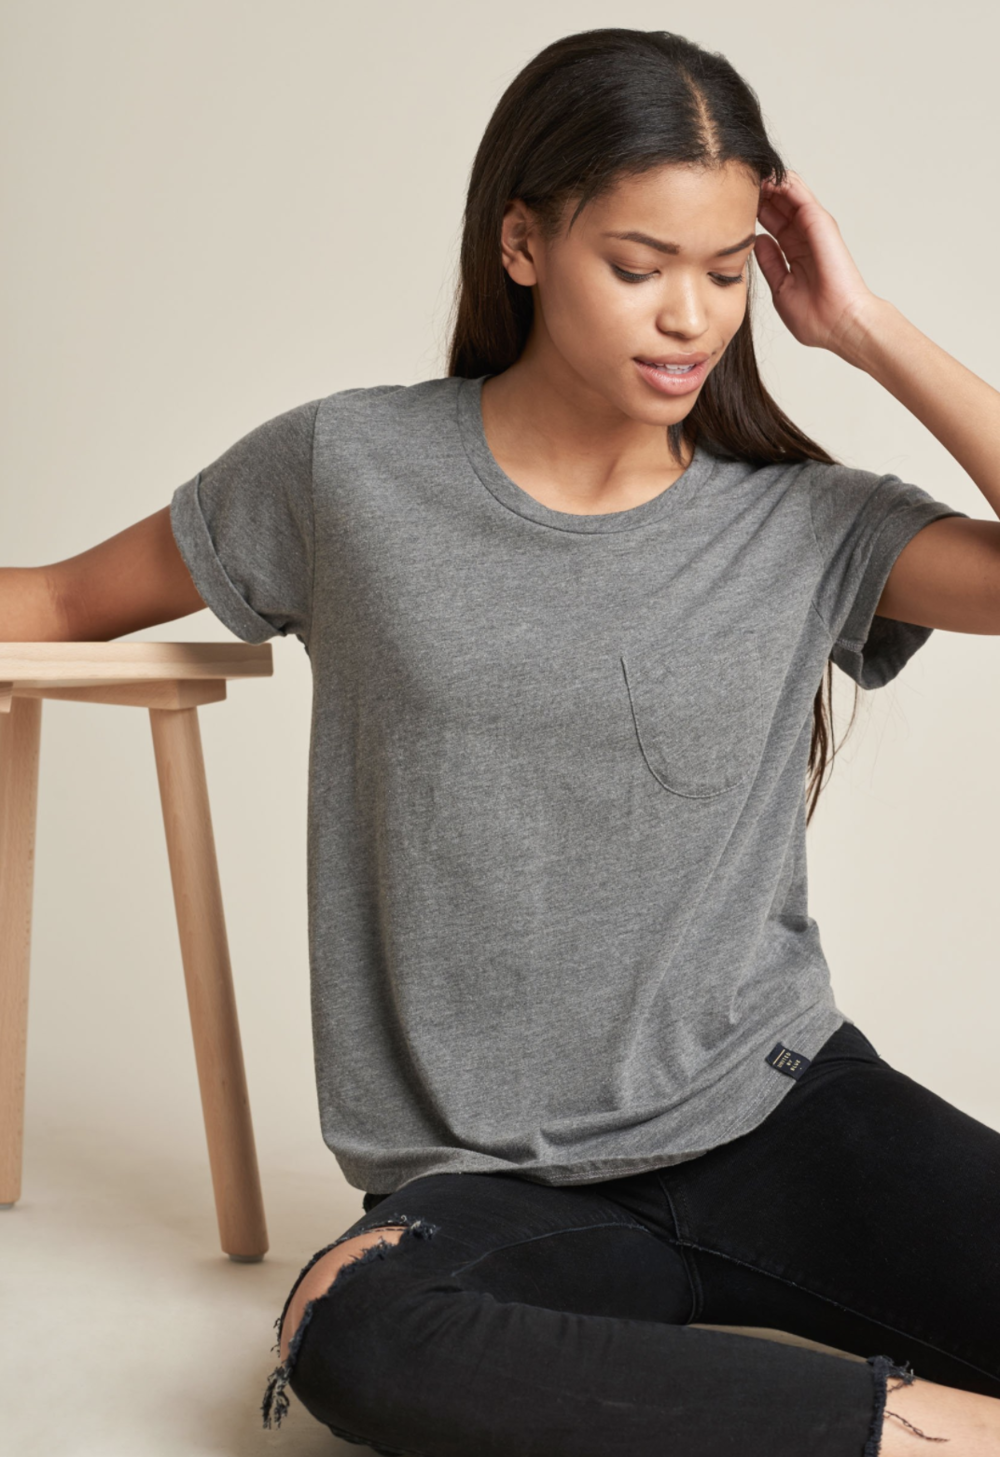 Eco Friendly Activewear Sustainable Fashion Brands | United by Blue | Guide by Conscious Fashion Collective